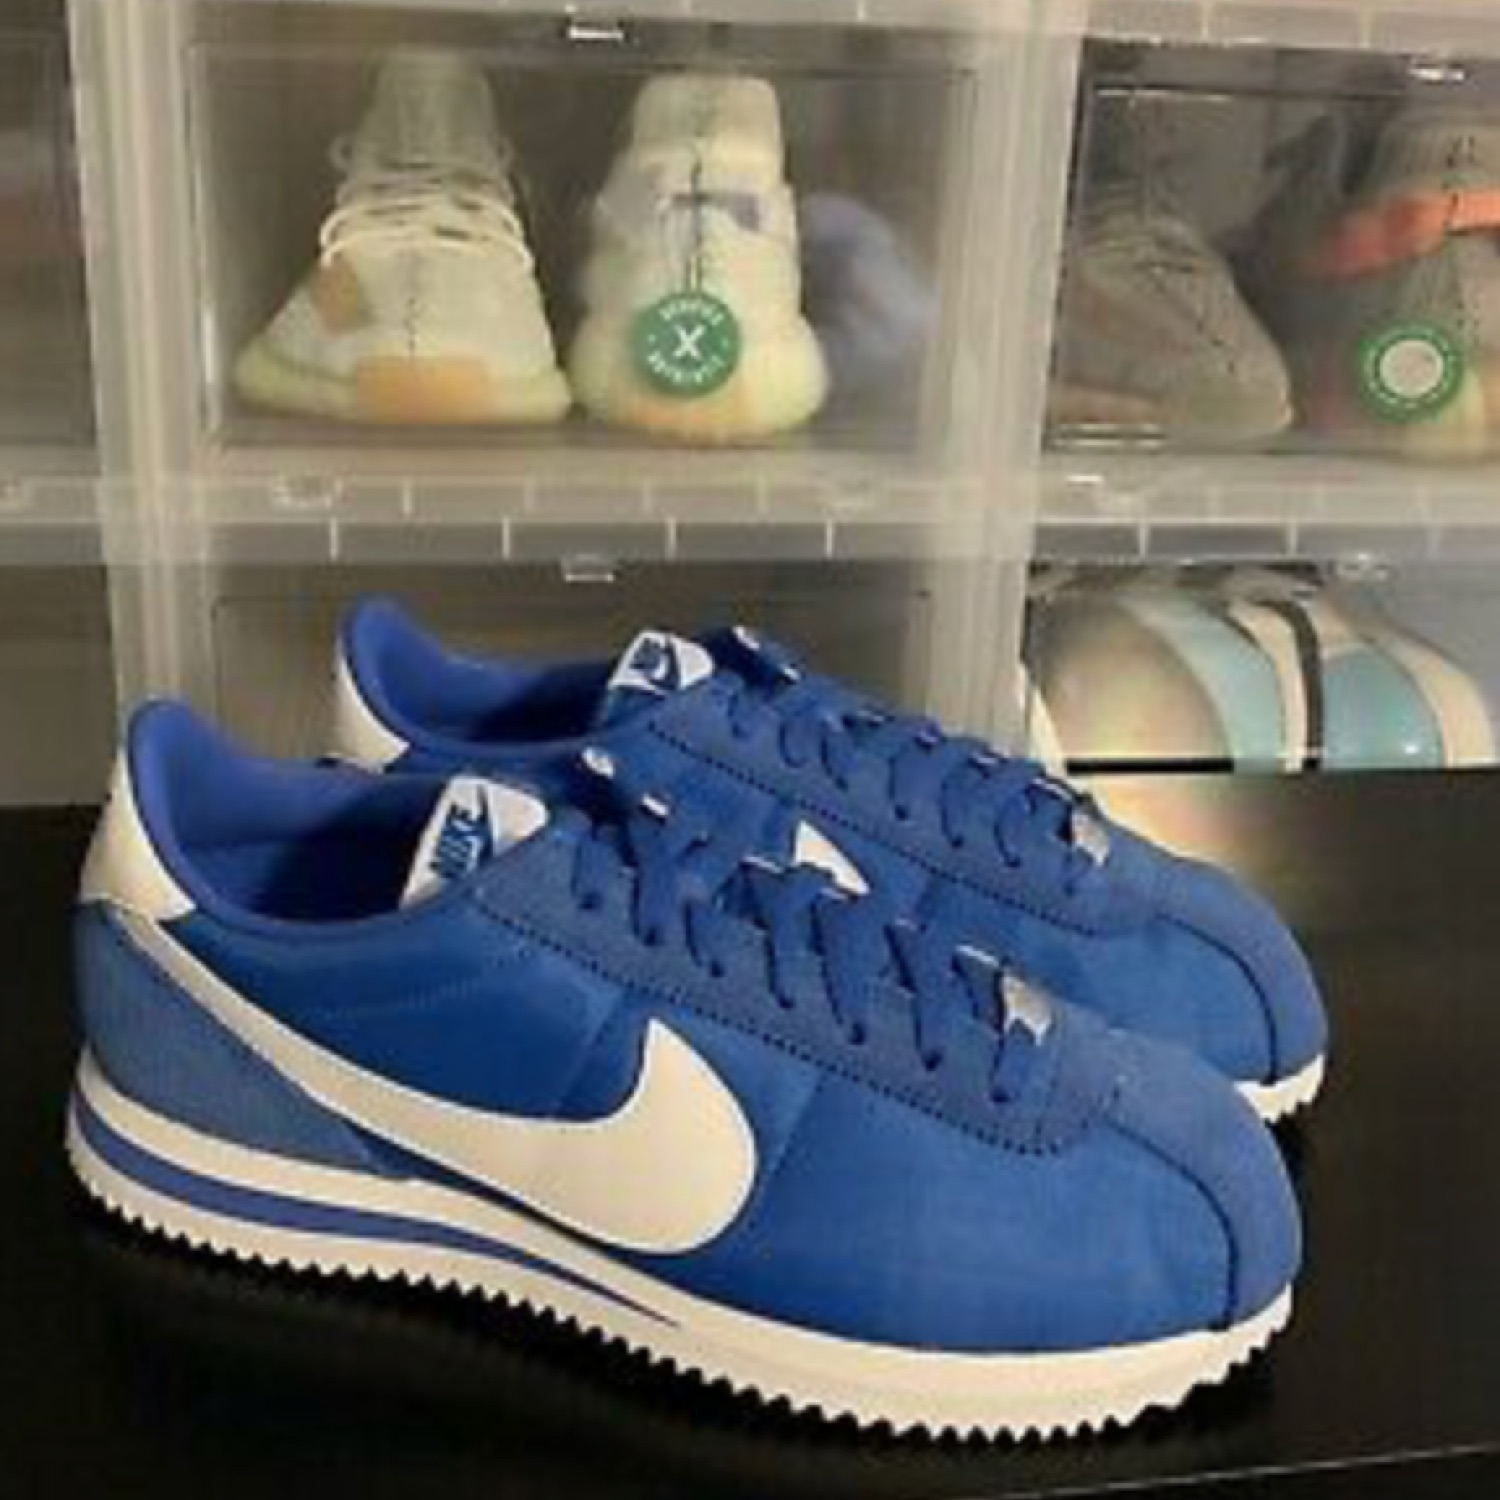 Nike Classic Cortez Blue And White Size